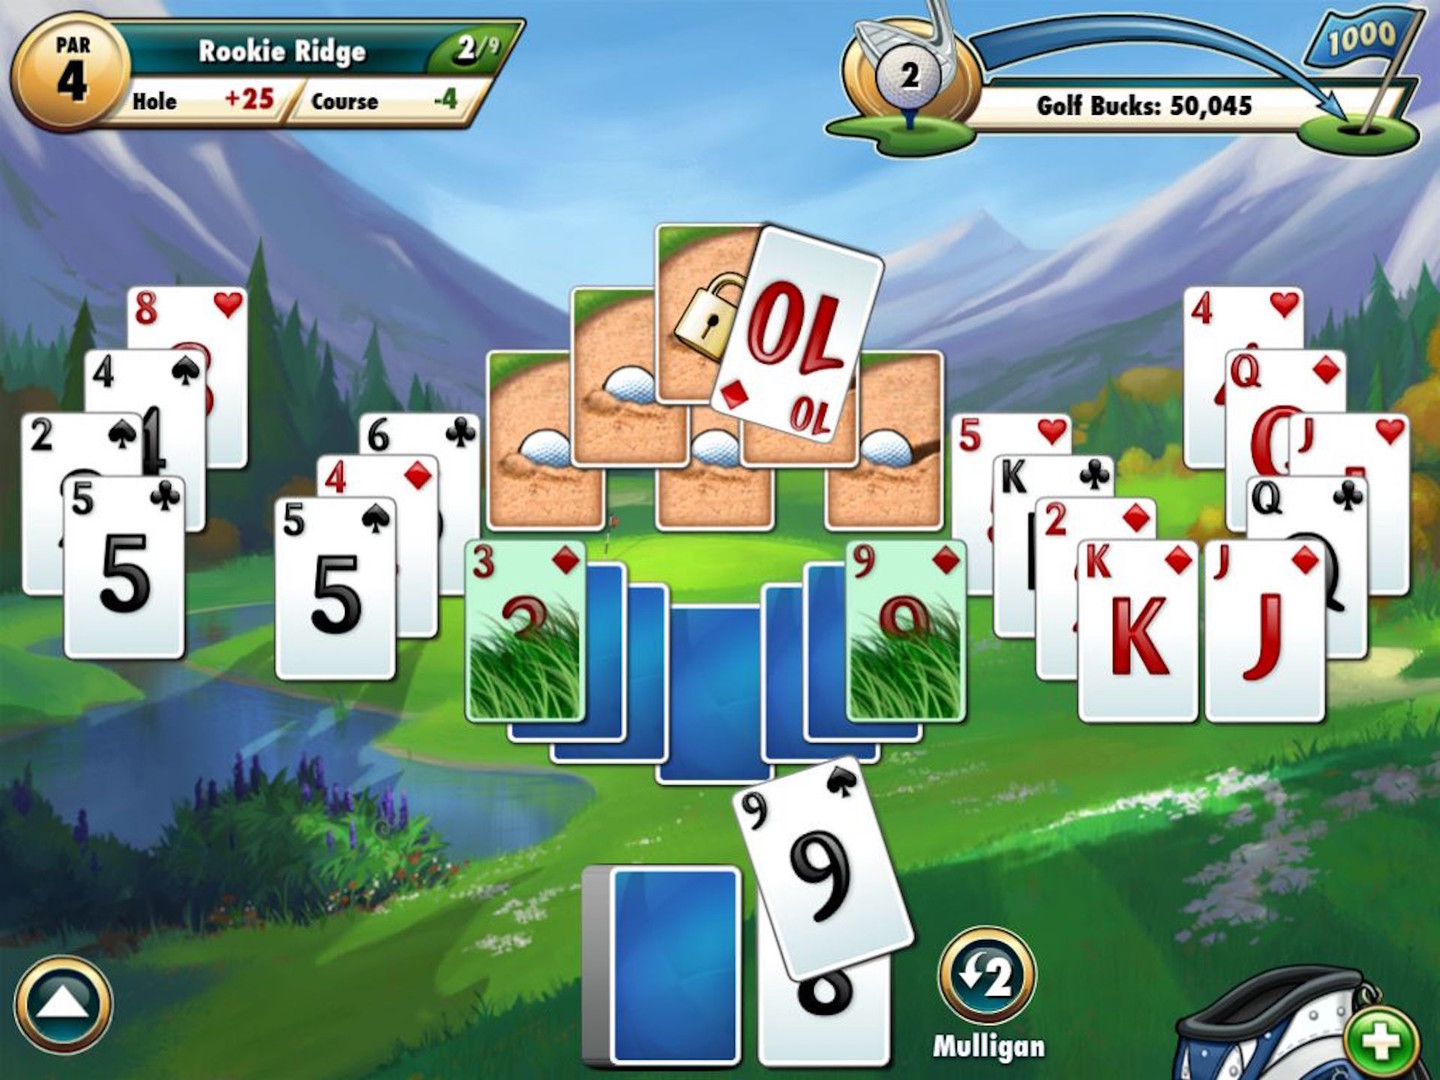 Fairway solitaire card game by big fish games inc for Fairway solitaire big fish games